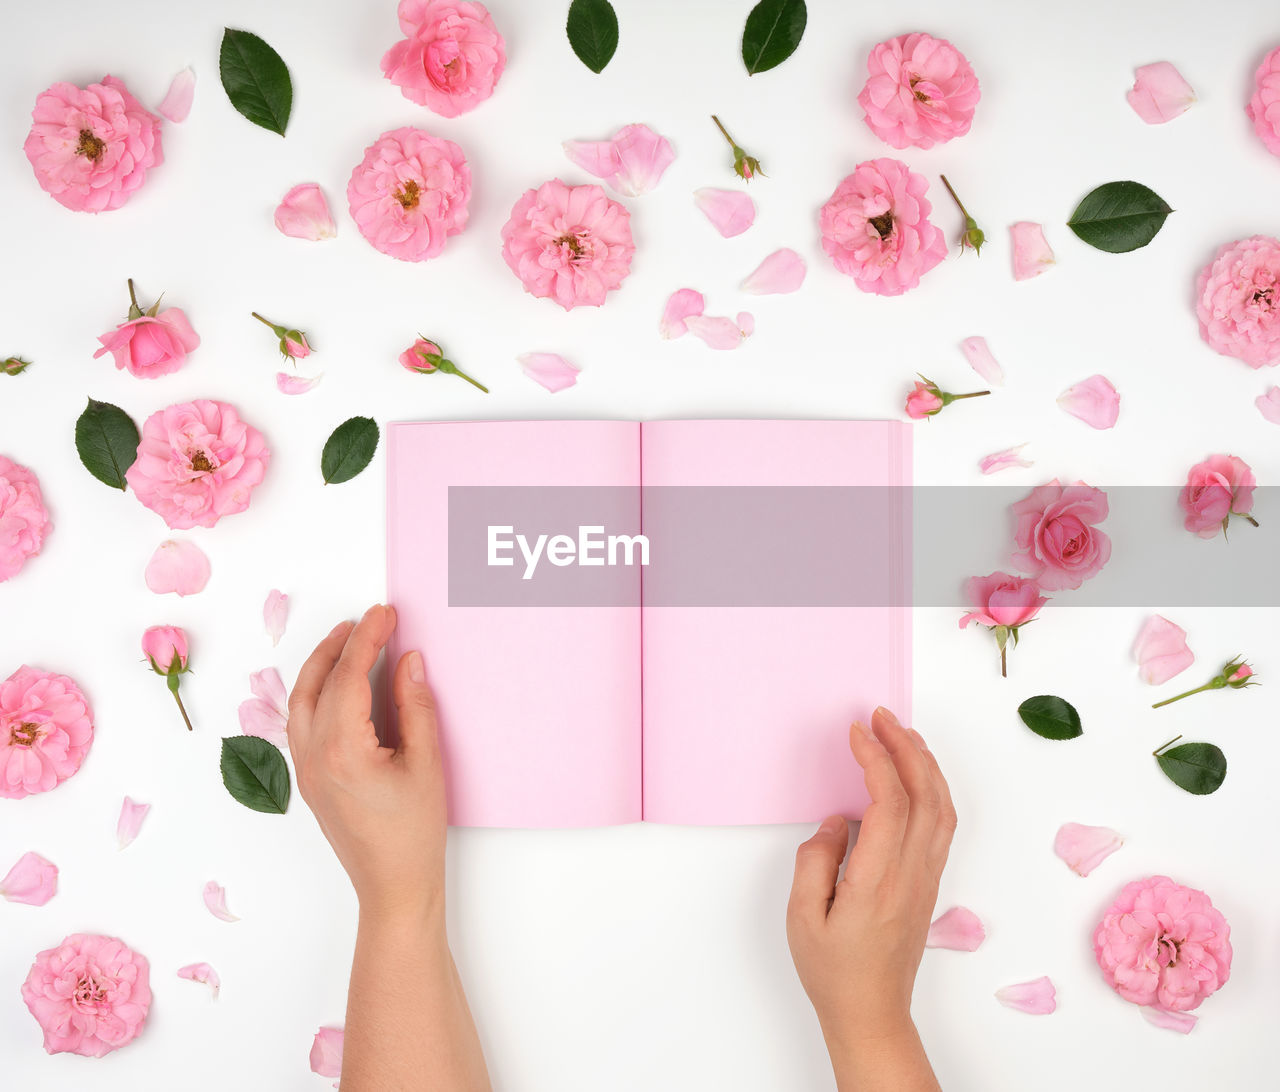 pink color, one person, indoors, human hand, human body part, hand, real people, plant, directly above, book, publication, flower, flowering plant, women, holding, high angle view, lifestyles, body part, paper, floral pattern